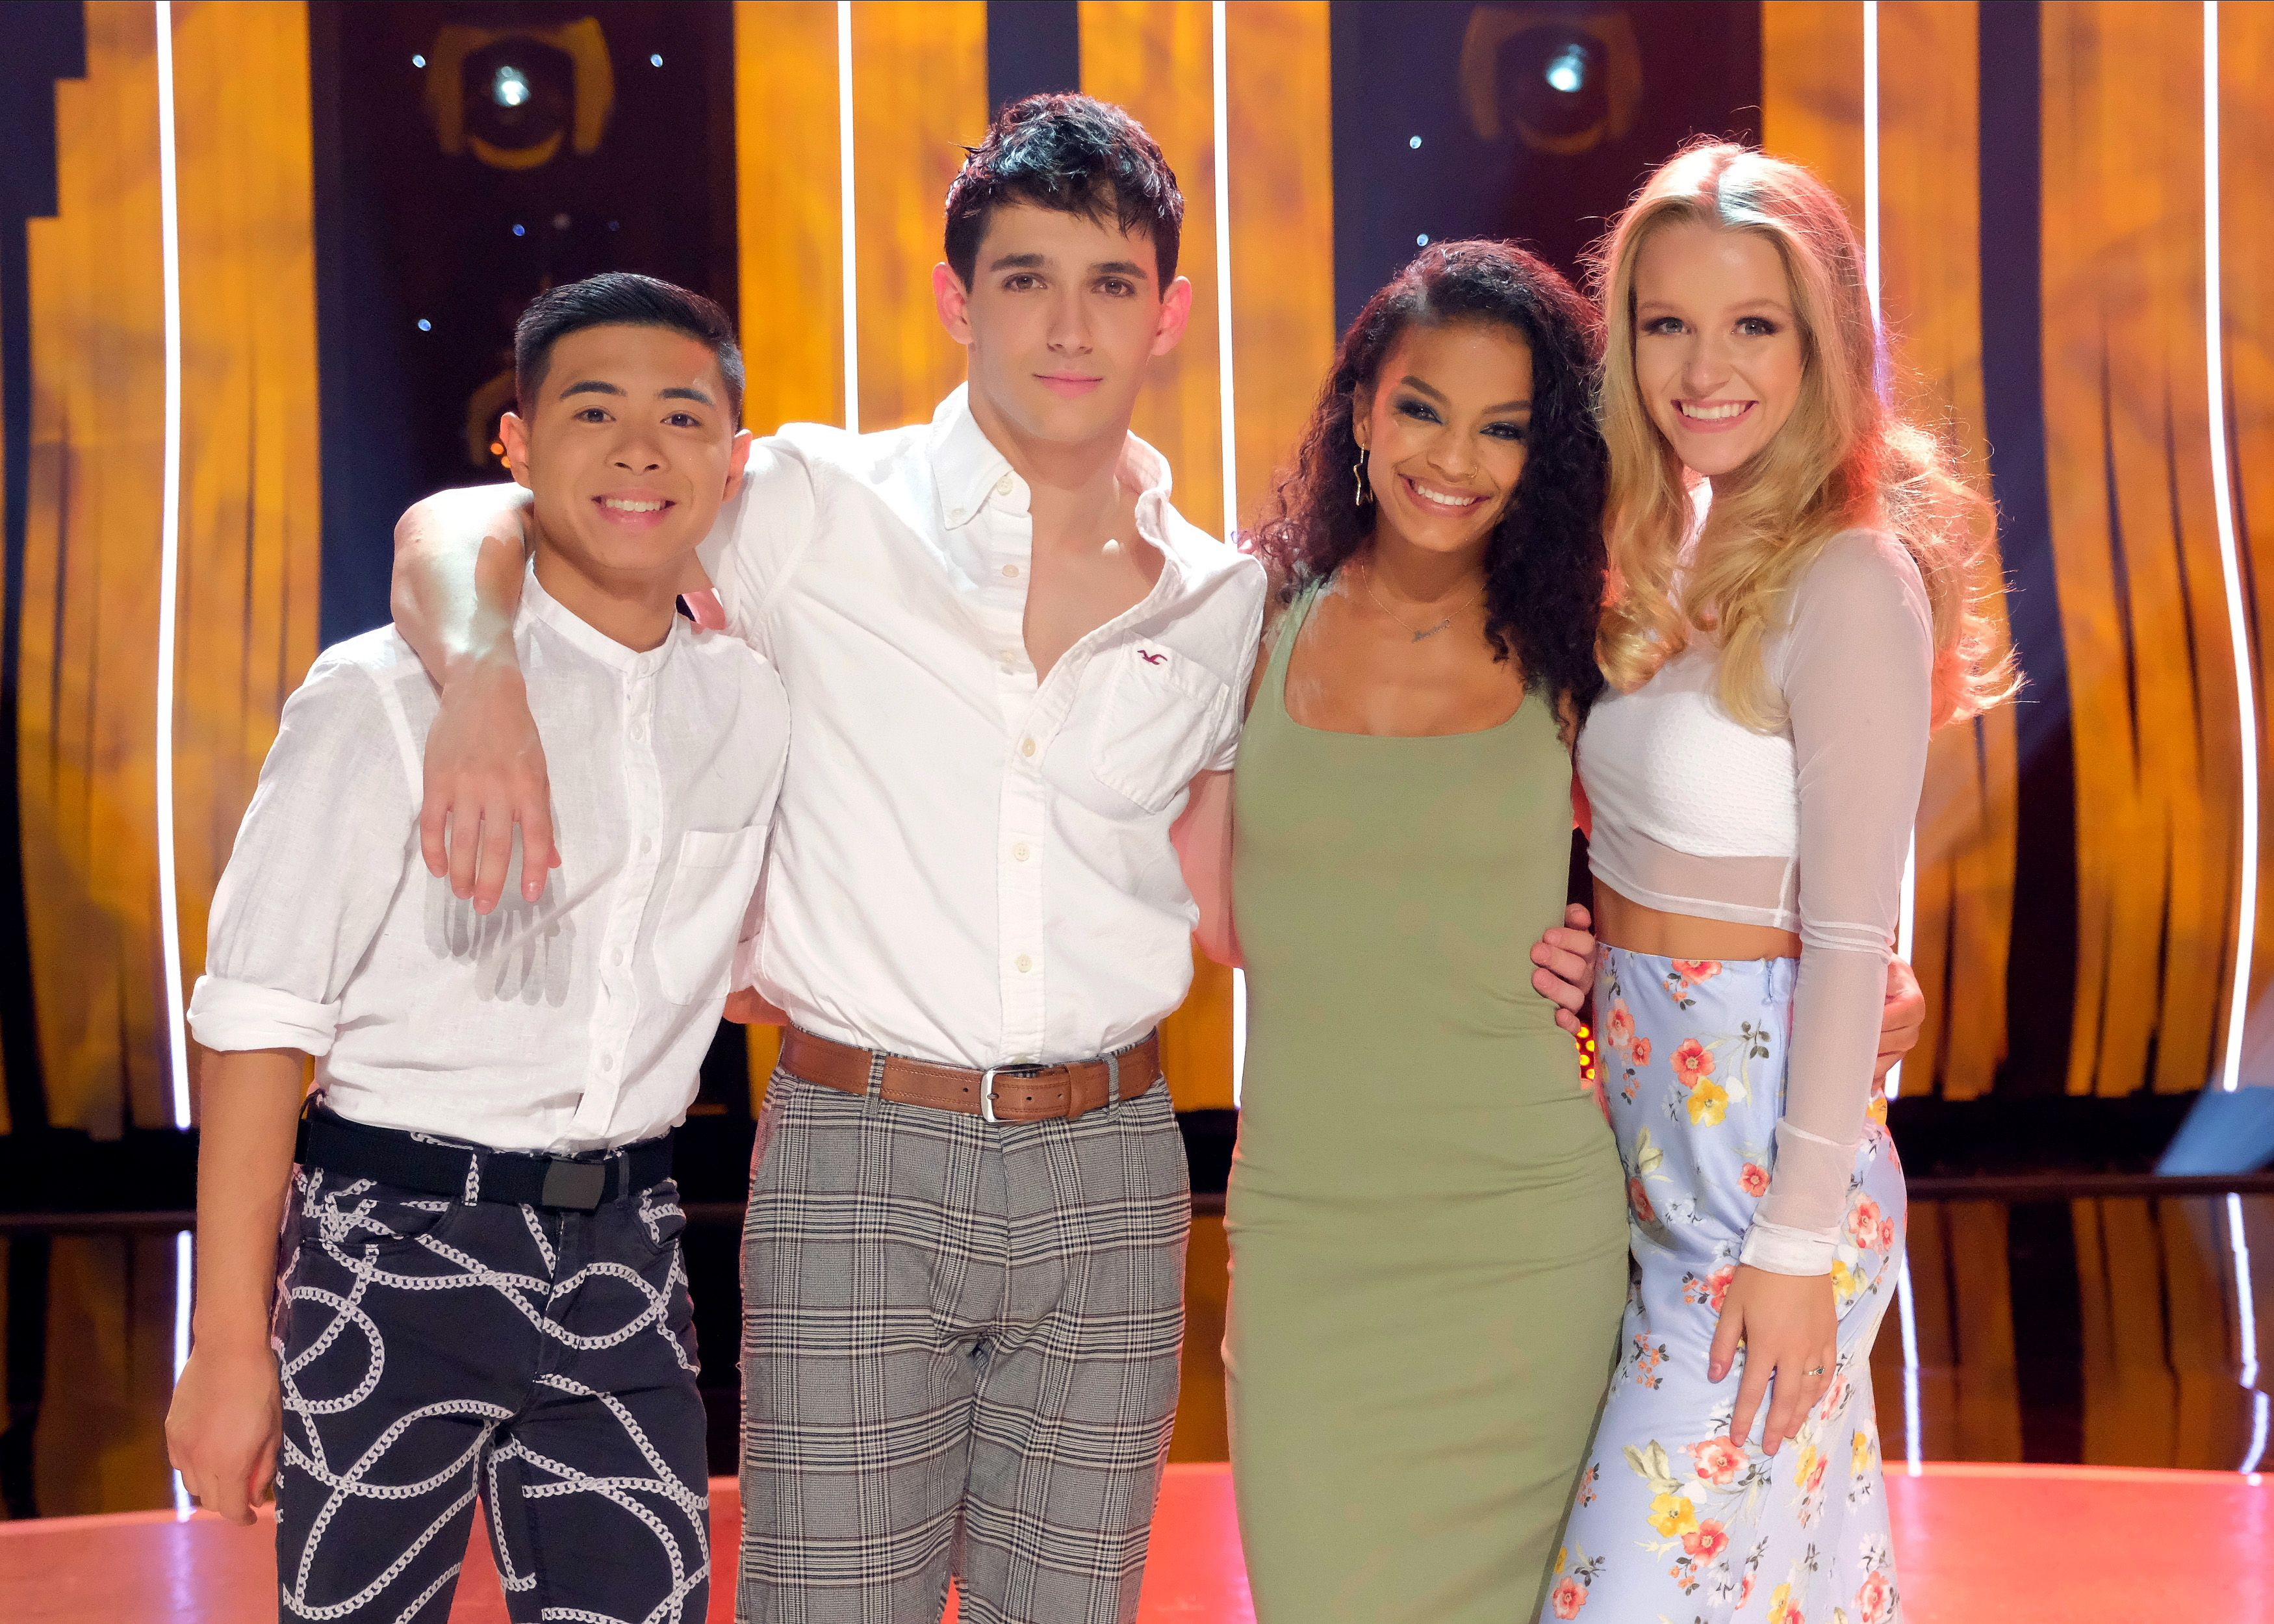 So You Think You Can Dance' 2019 Finalists - SYTYCD Top 20